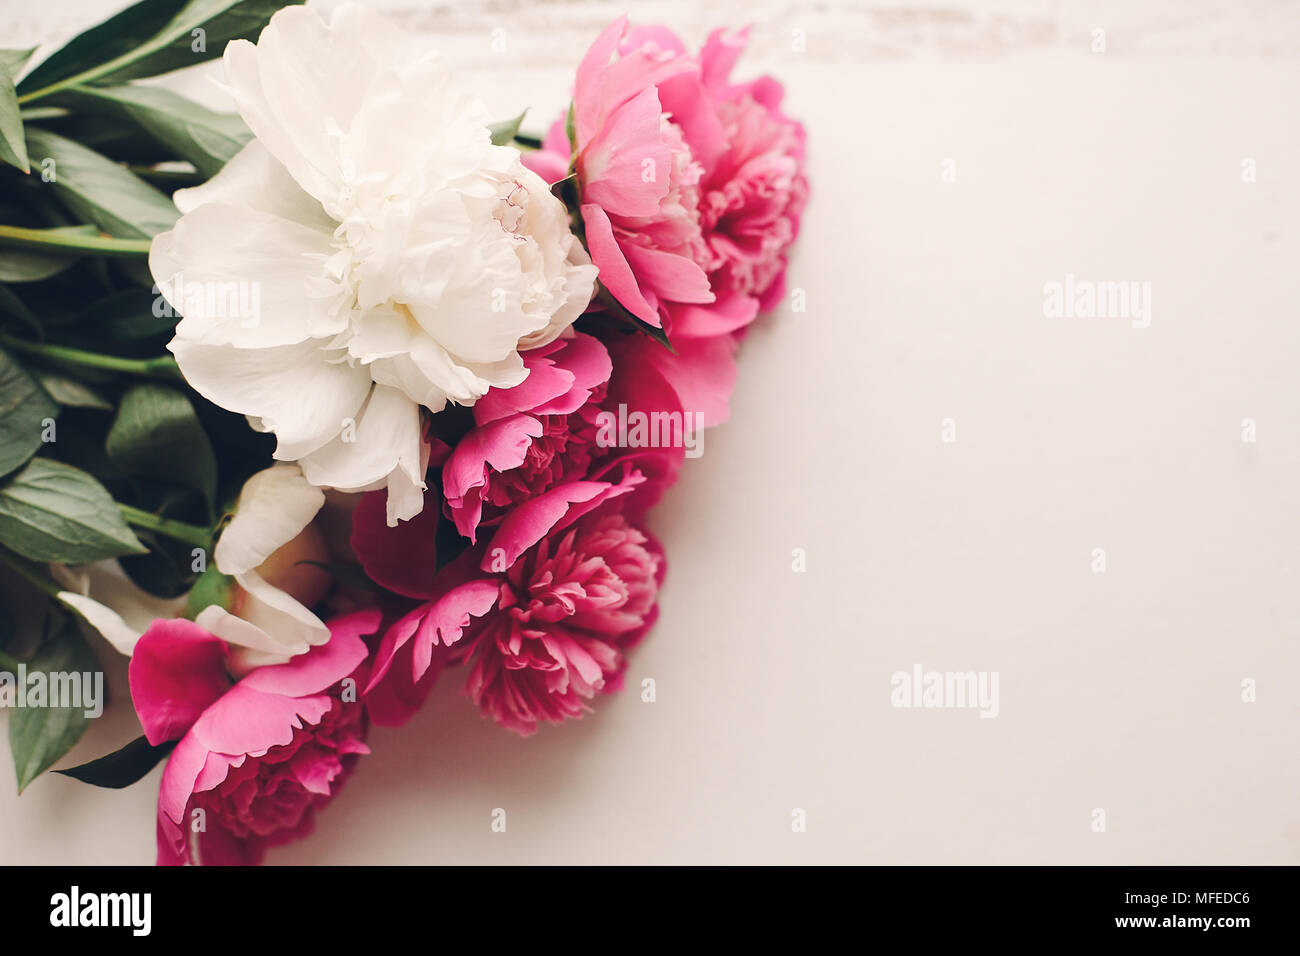 Lovely pink peonies on rustic white wooden background top view lovely pink peonies on rustic white wooden background top view space for text floral greeting card flat lay beautiful peony flowers pattern tende mightylinksfo